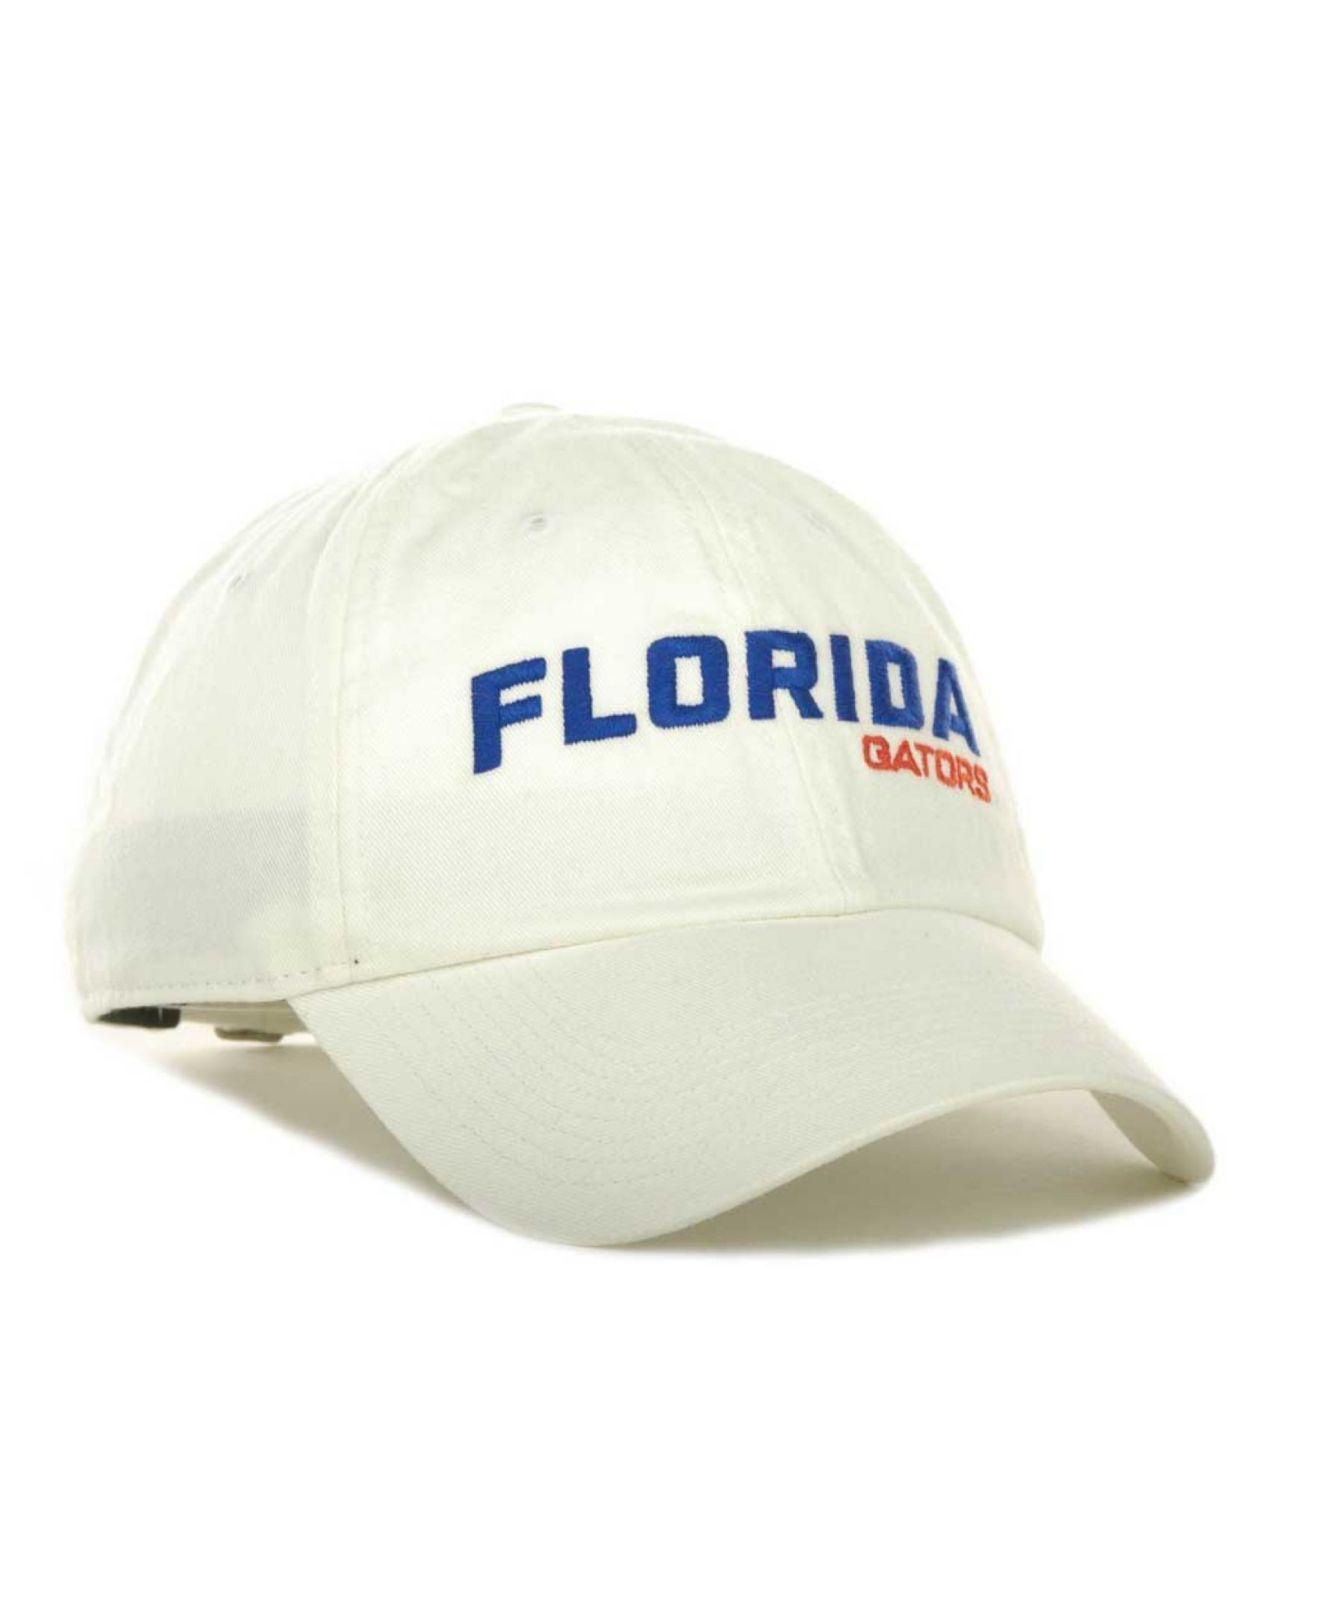 0df1d52473f Lyst - Nike Florida Gators Heritage 86 Campus Cap in White for Men